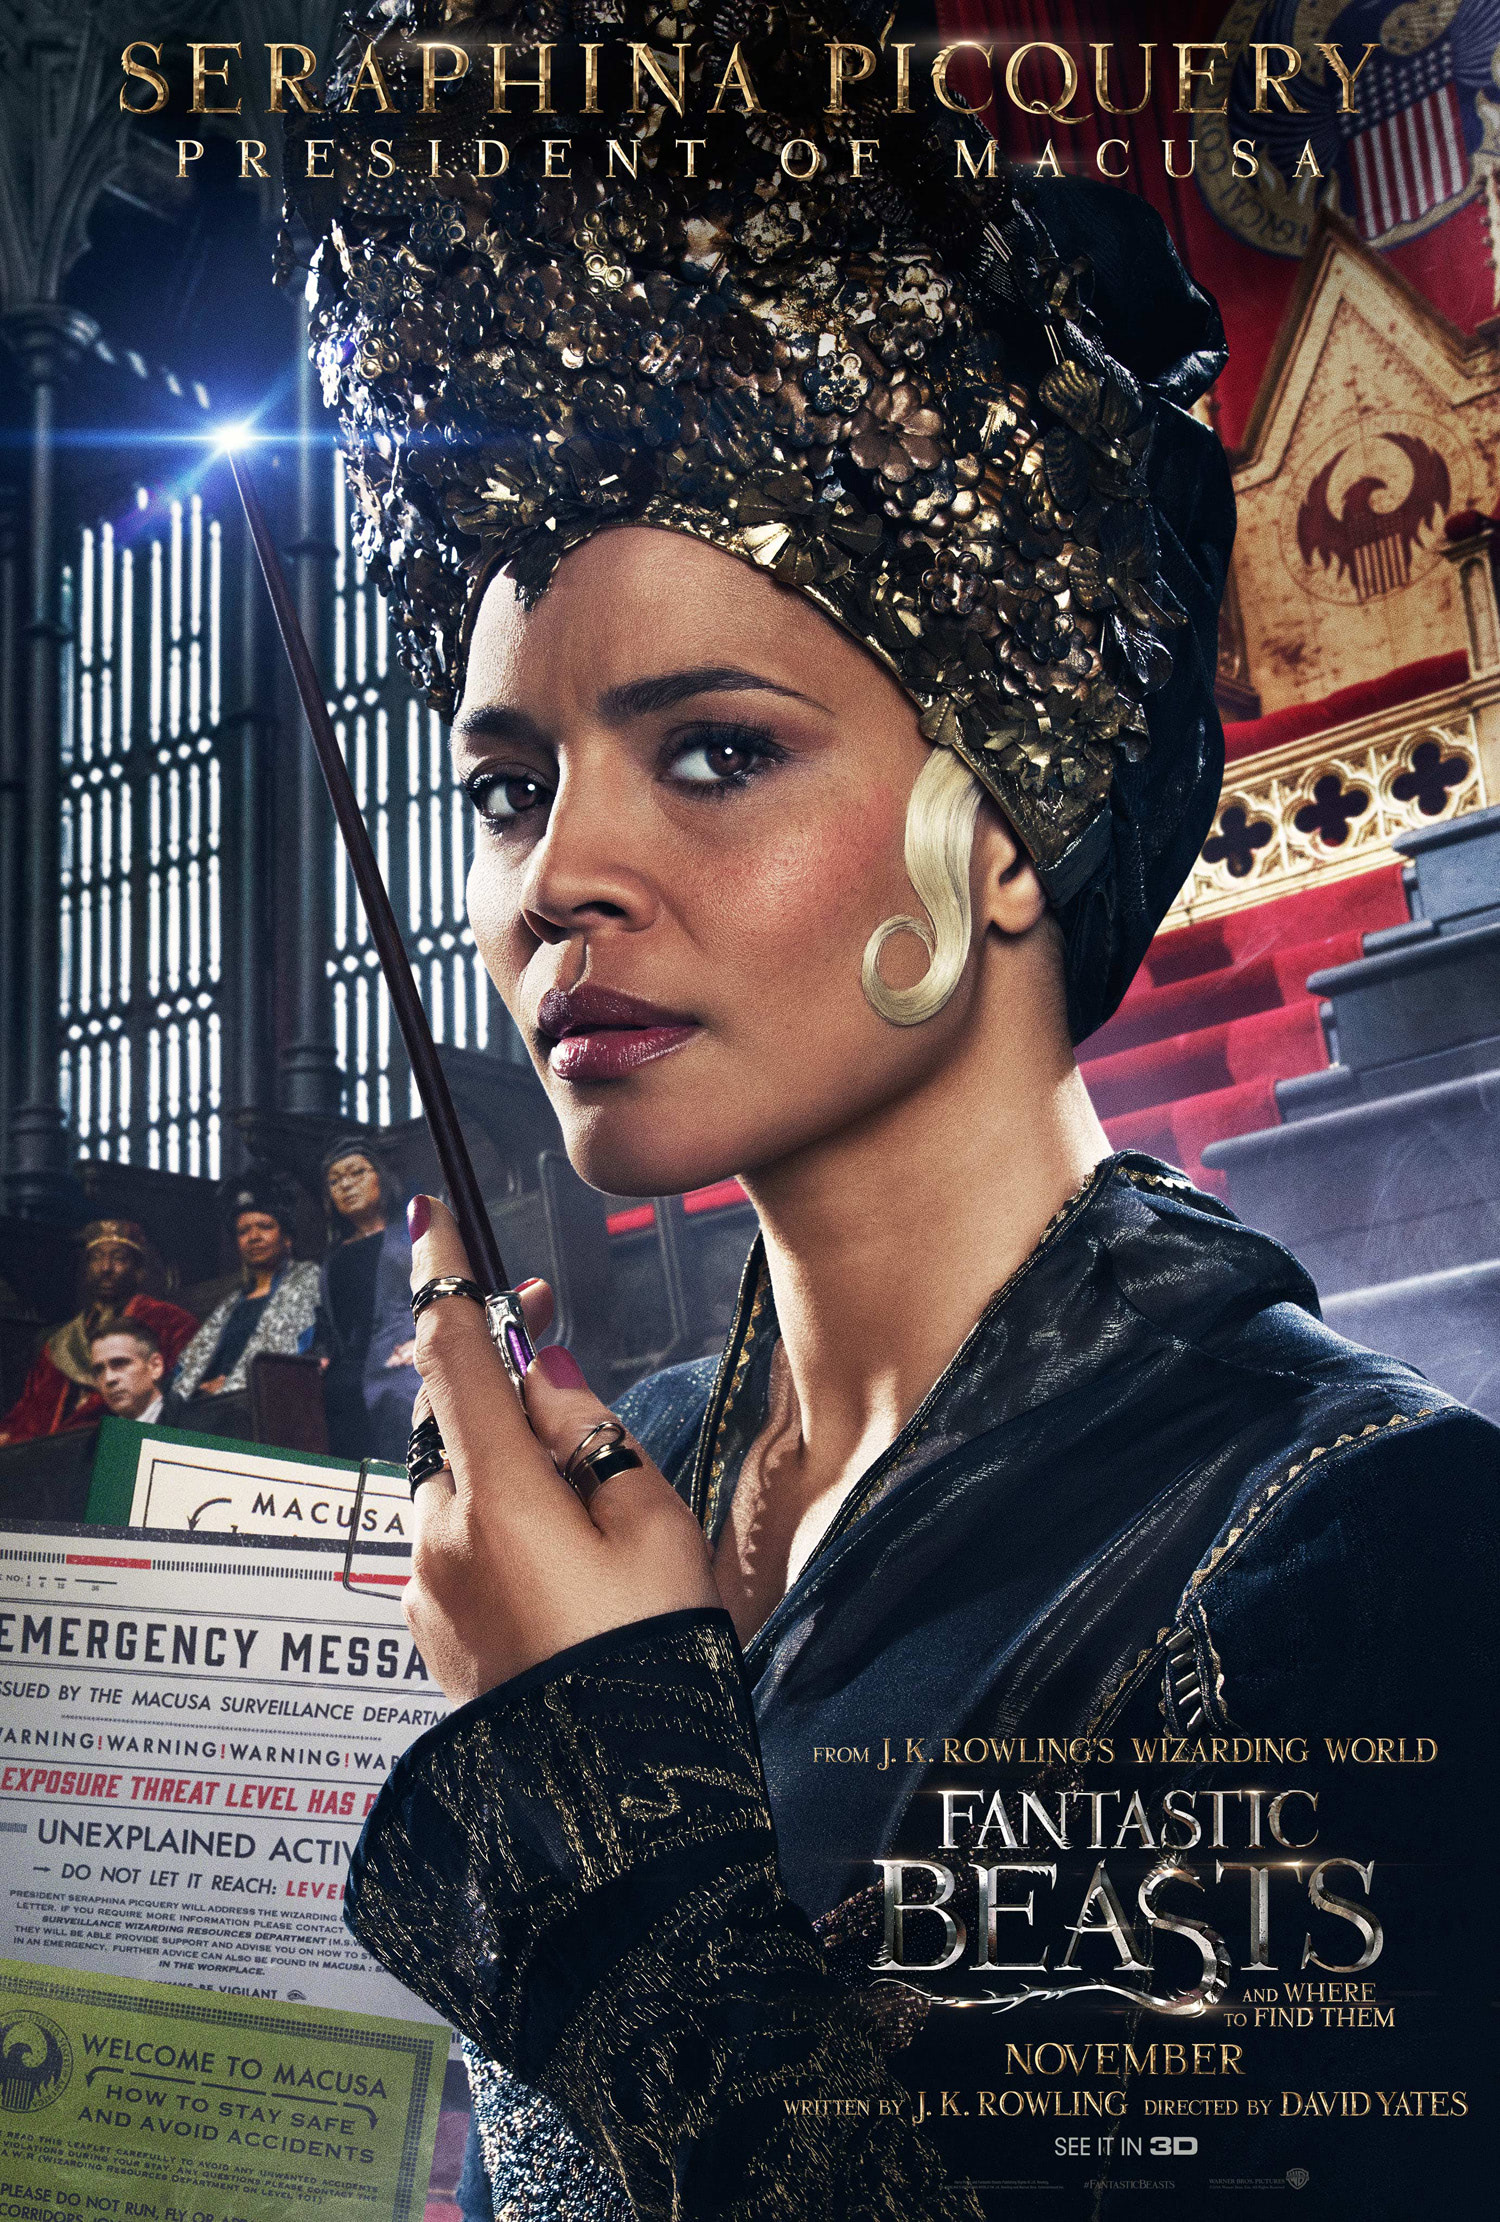 'Fantastic Beasts and Where to Find Them' Seraphina Picquery poster